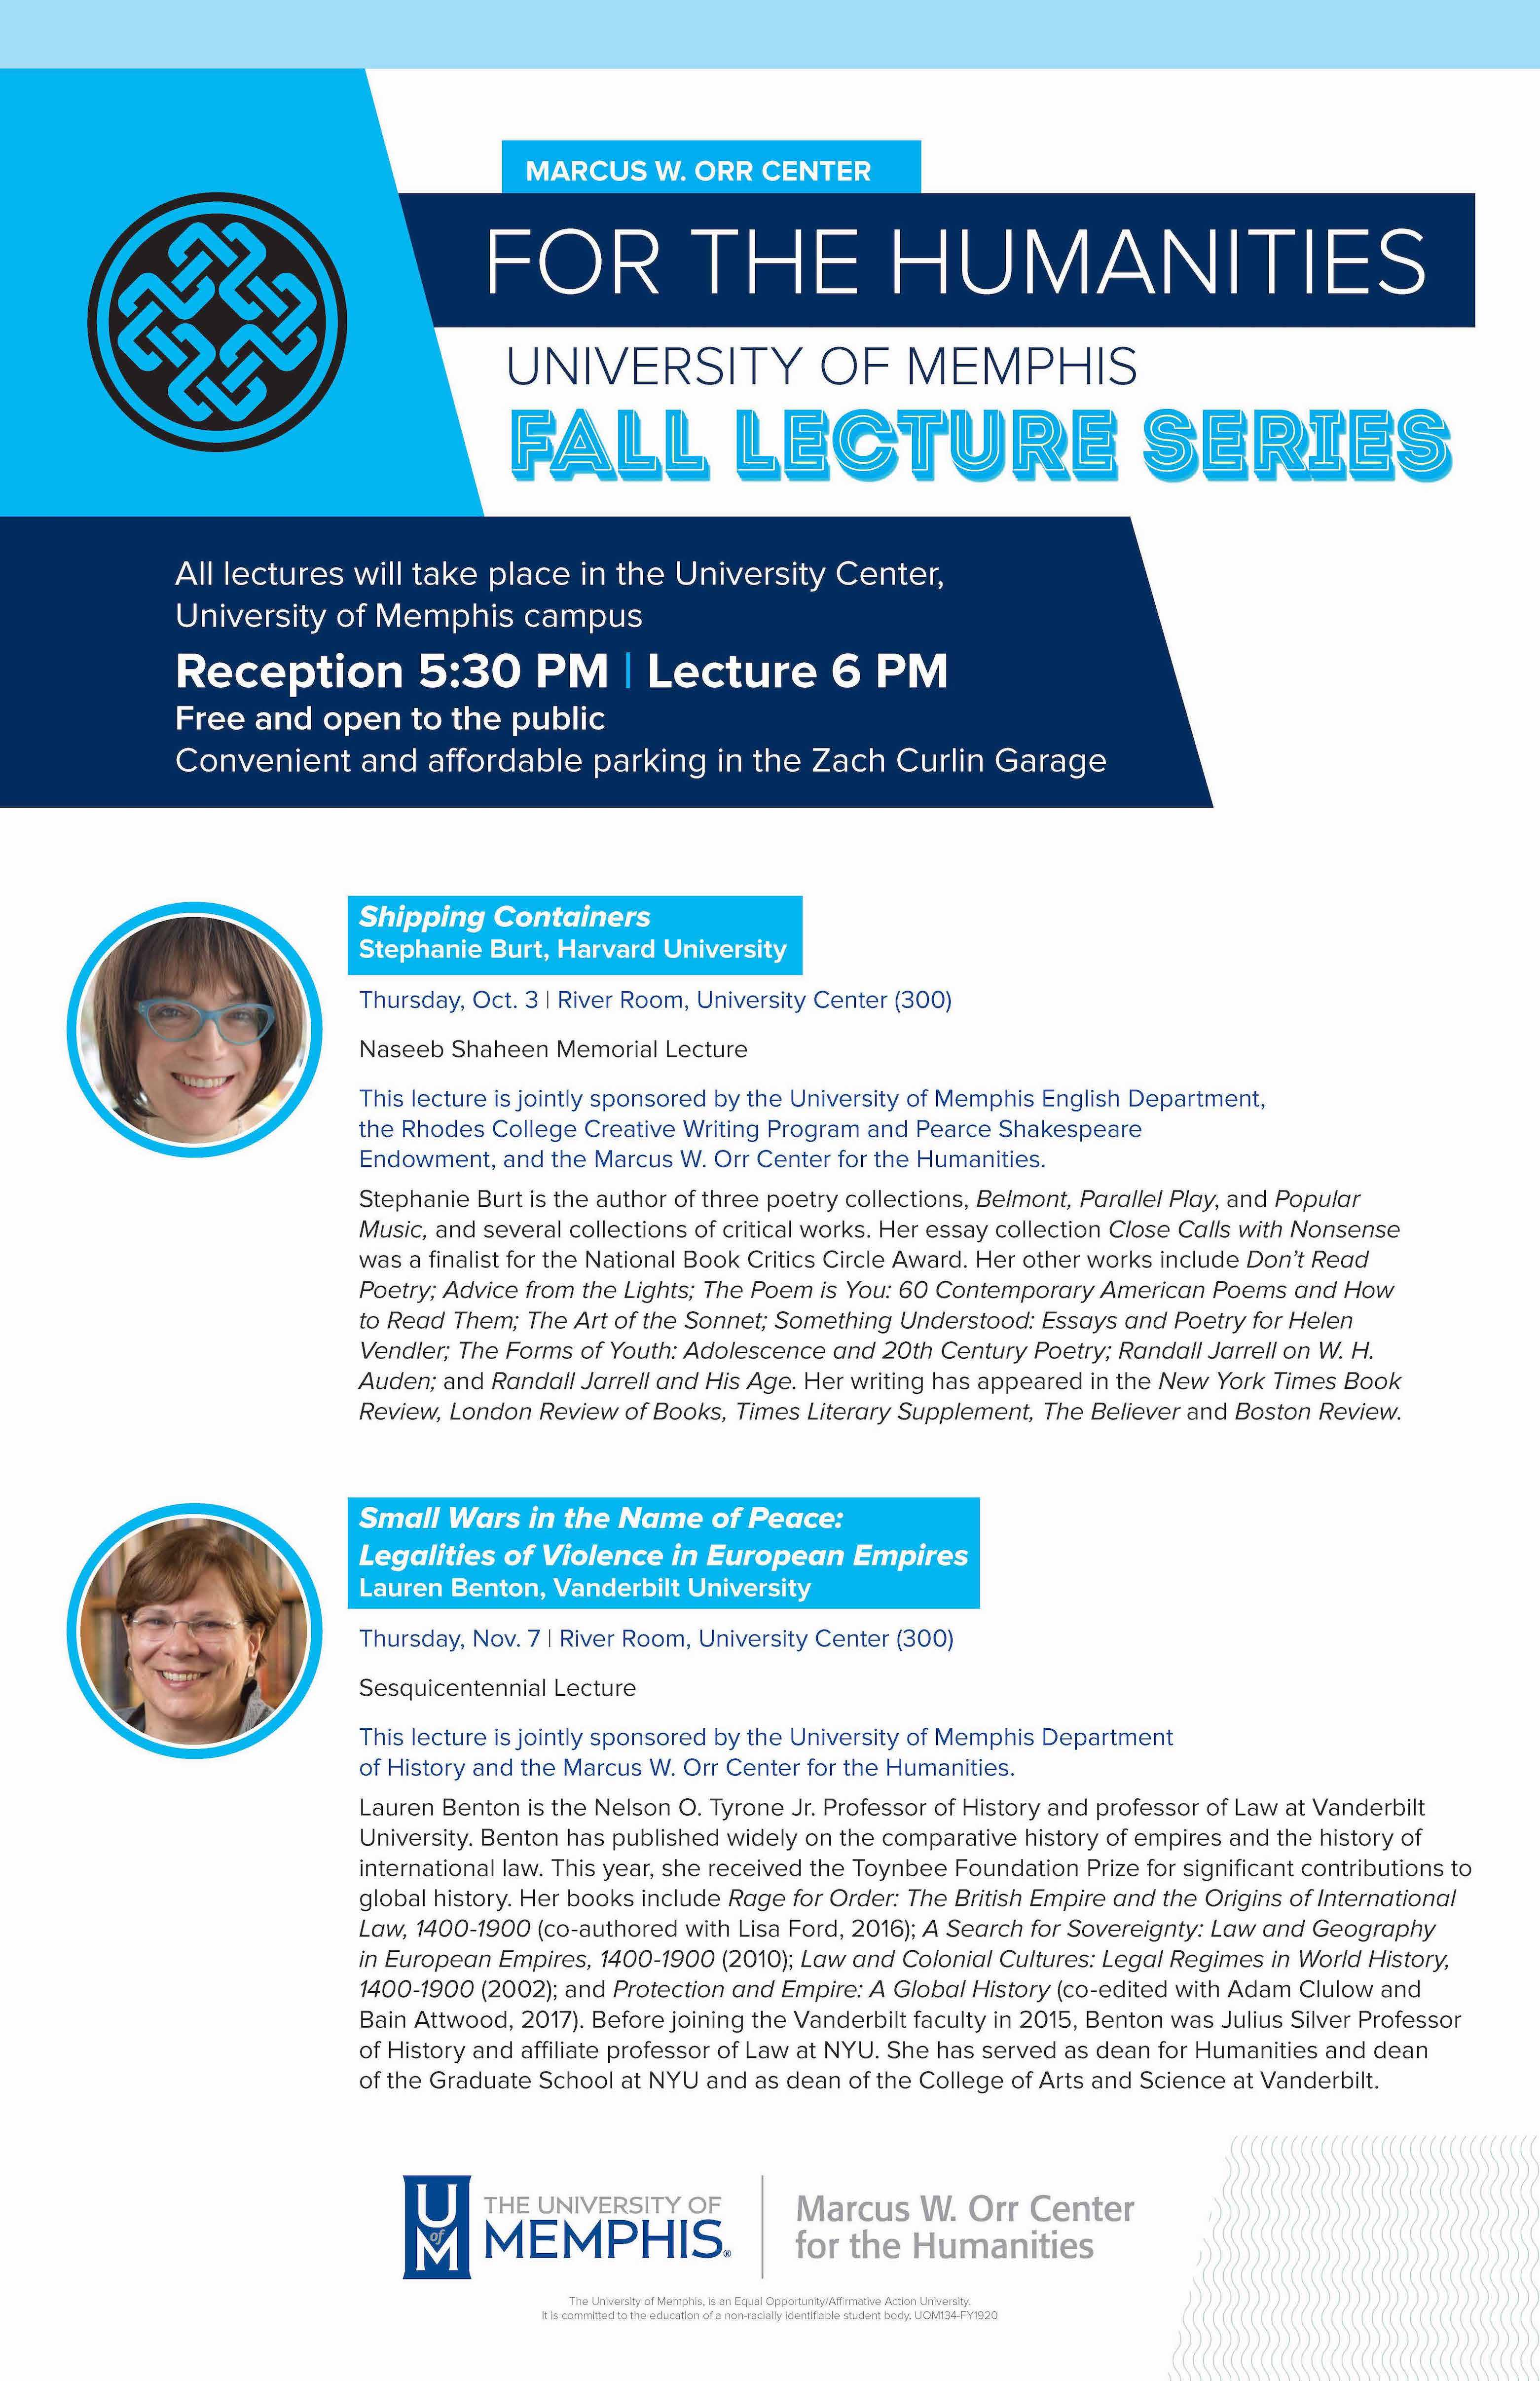 MOCH Fall 2019 Lecture Series